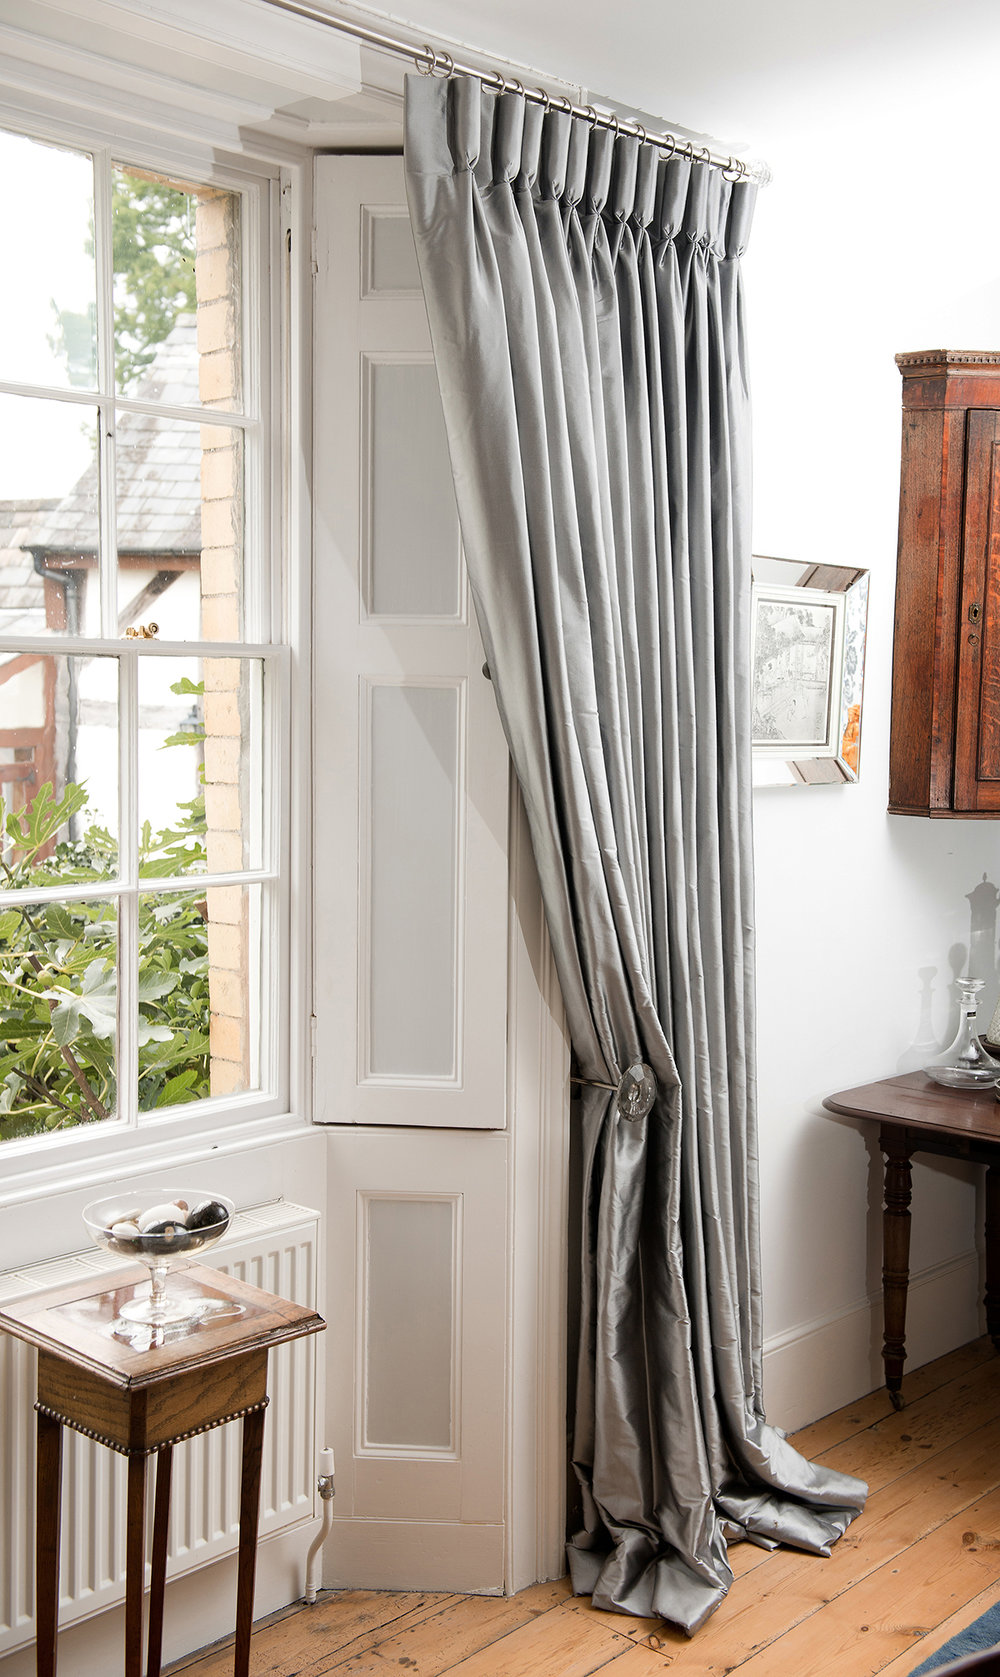 These beautiful, handmade, silk curtains were made for the Georgian windows in a country home. They are elegant and classical and we have made them for homes in Gloucester and Surrey but look equally as luxurious in Chelsea, Fulham and Mayfair.